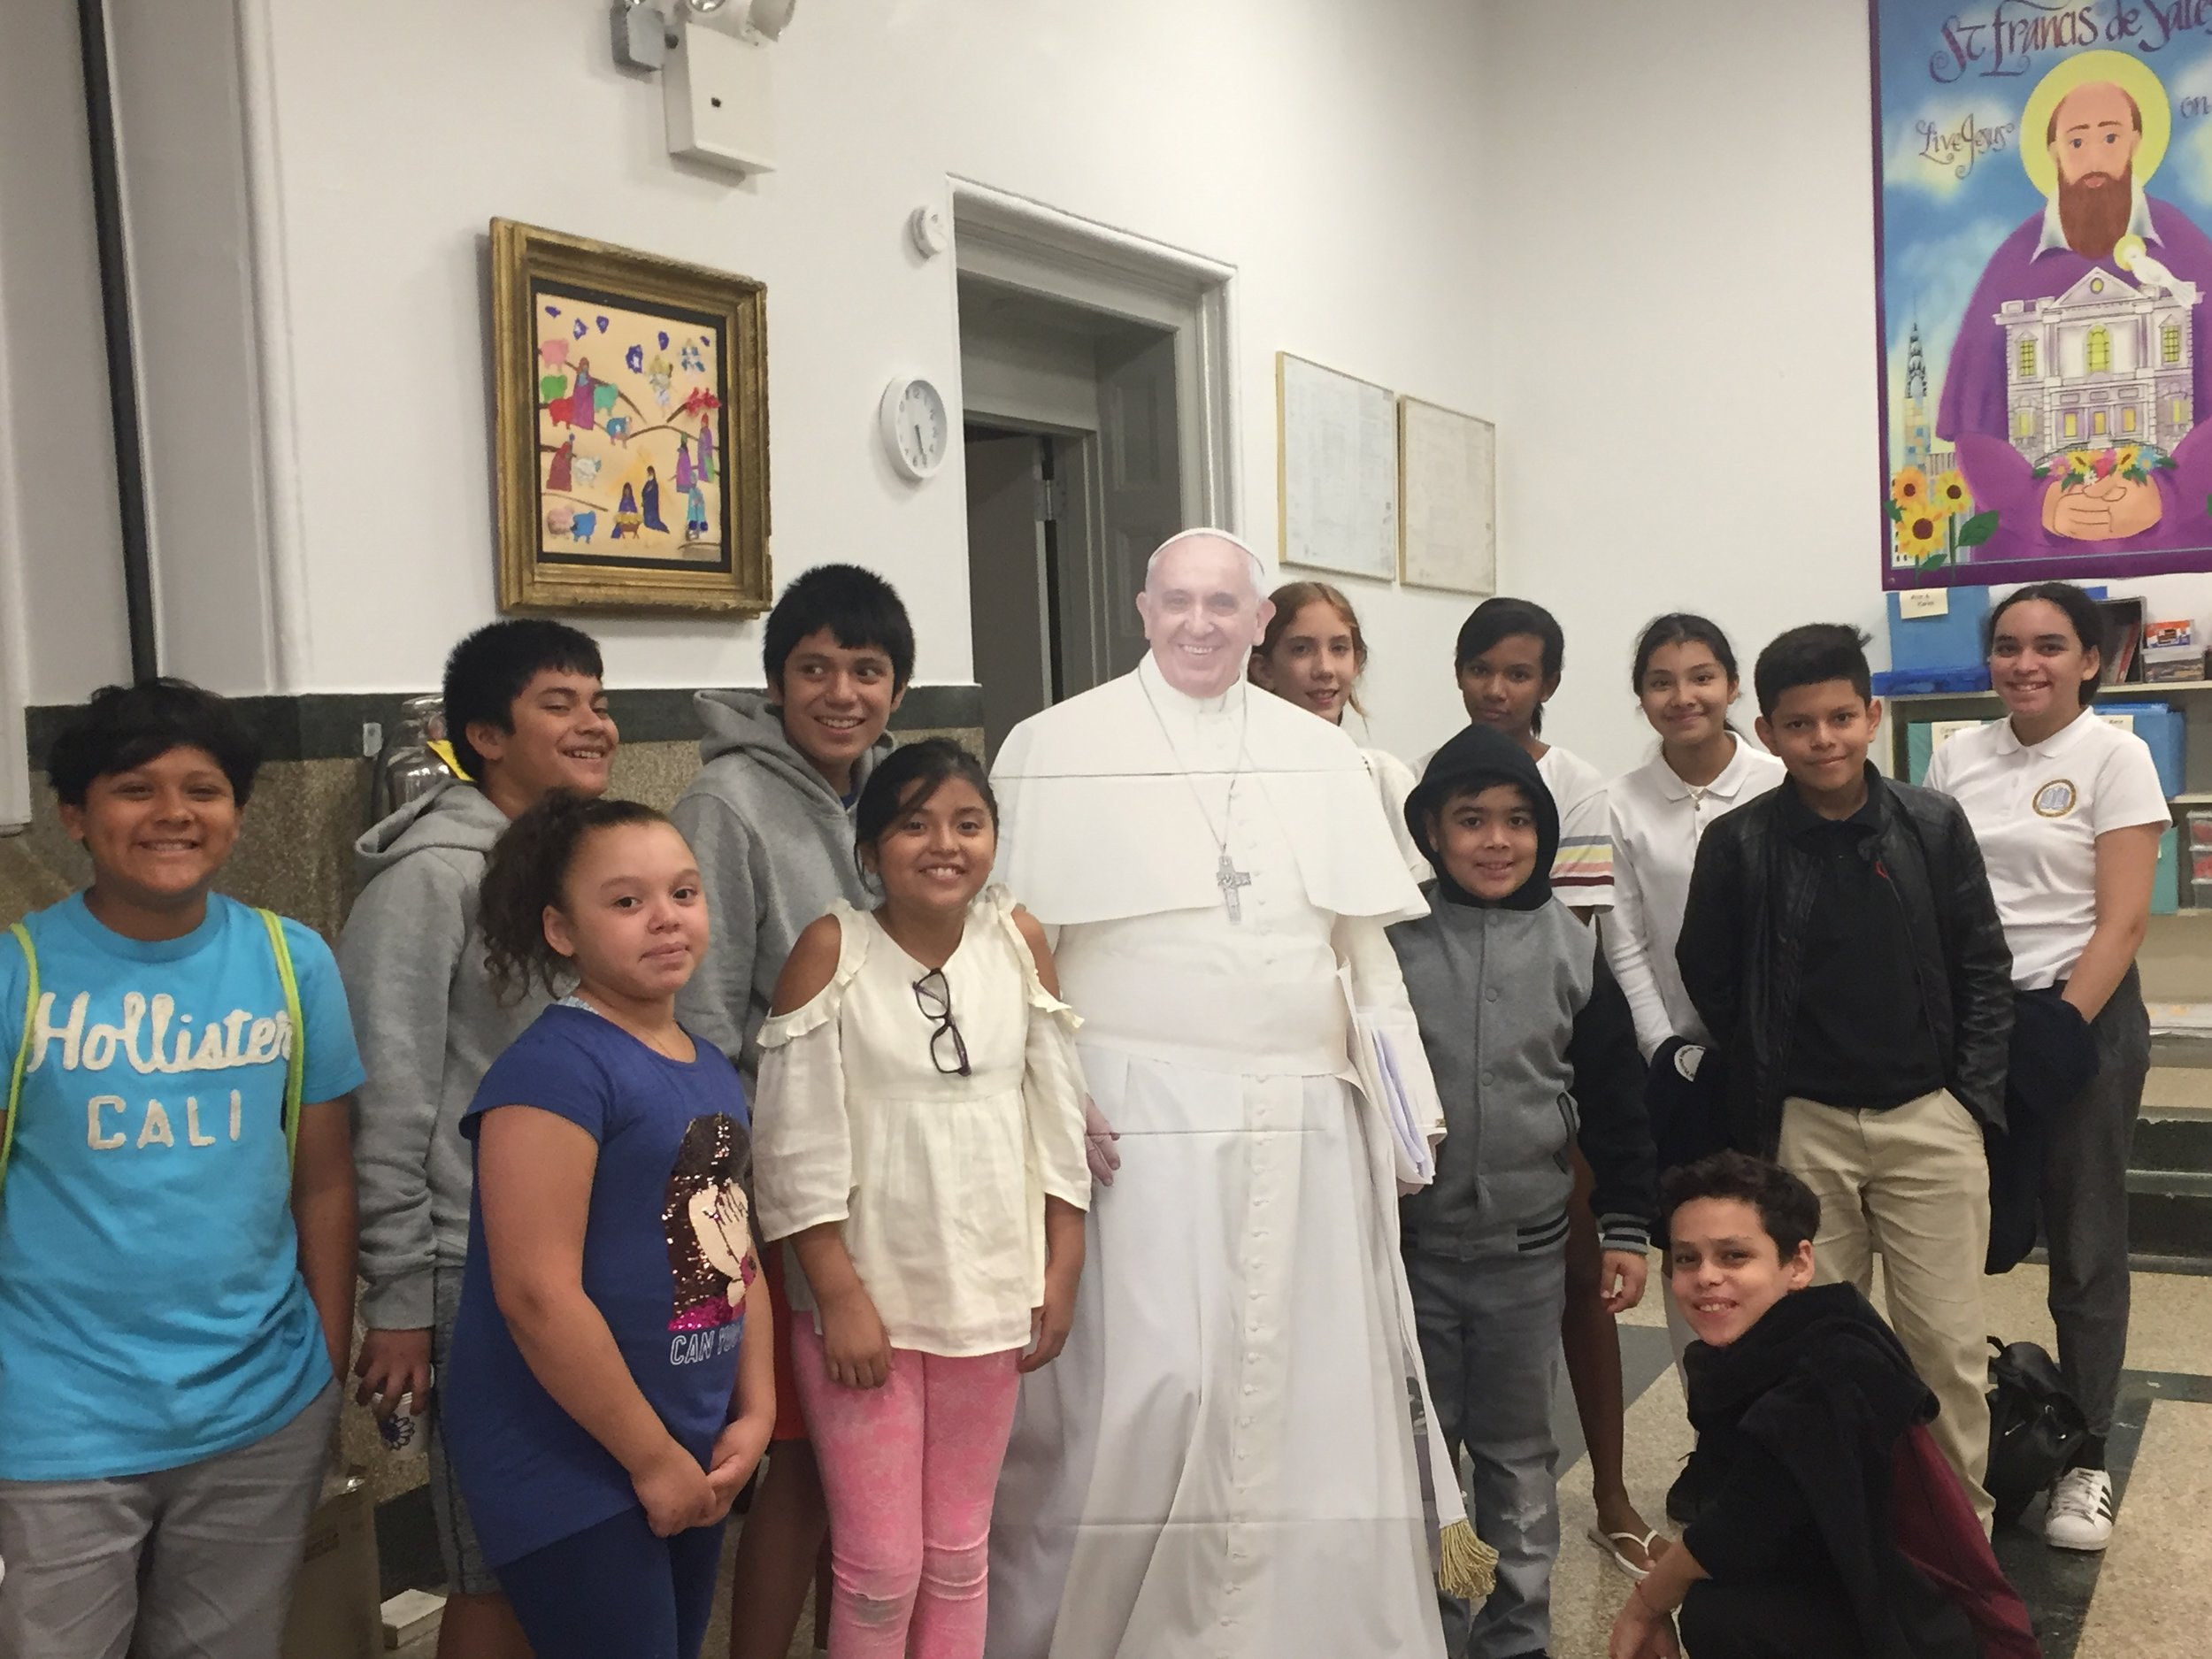 religious-education-st-francis-de-sales-catholic-church-new-york.JPG